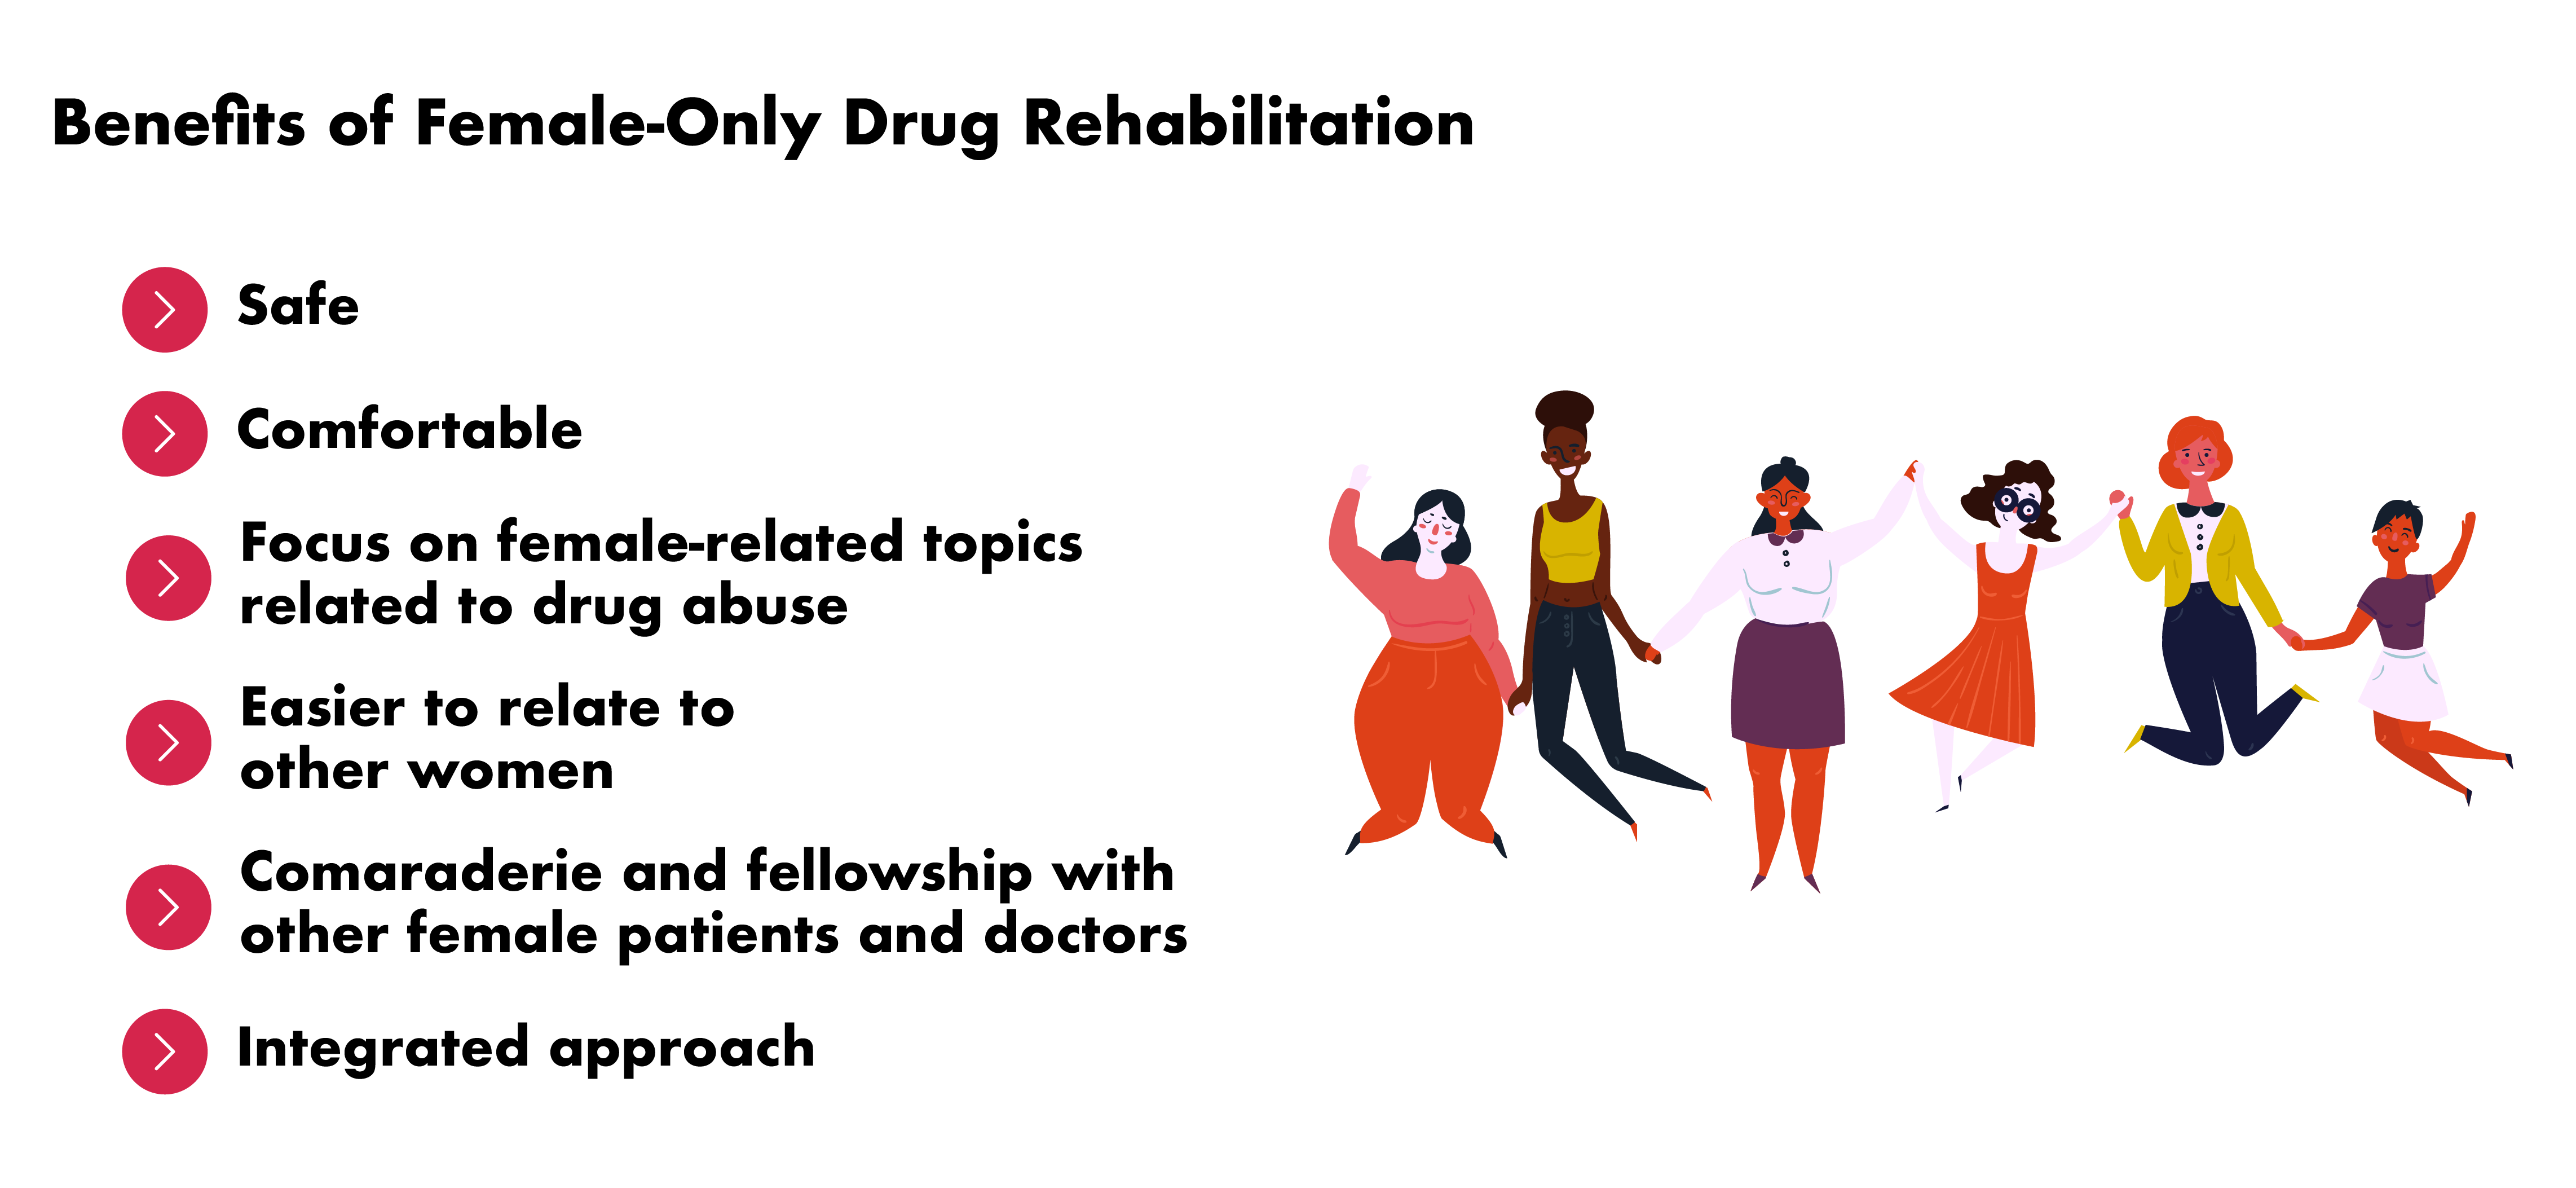 Rehabilitation Guide for Women - Benefits